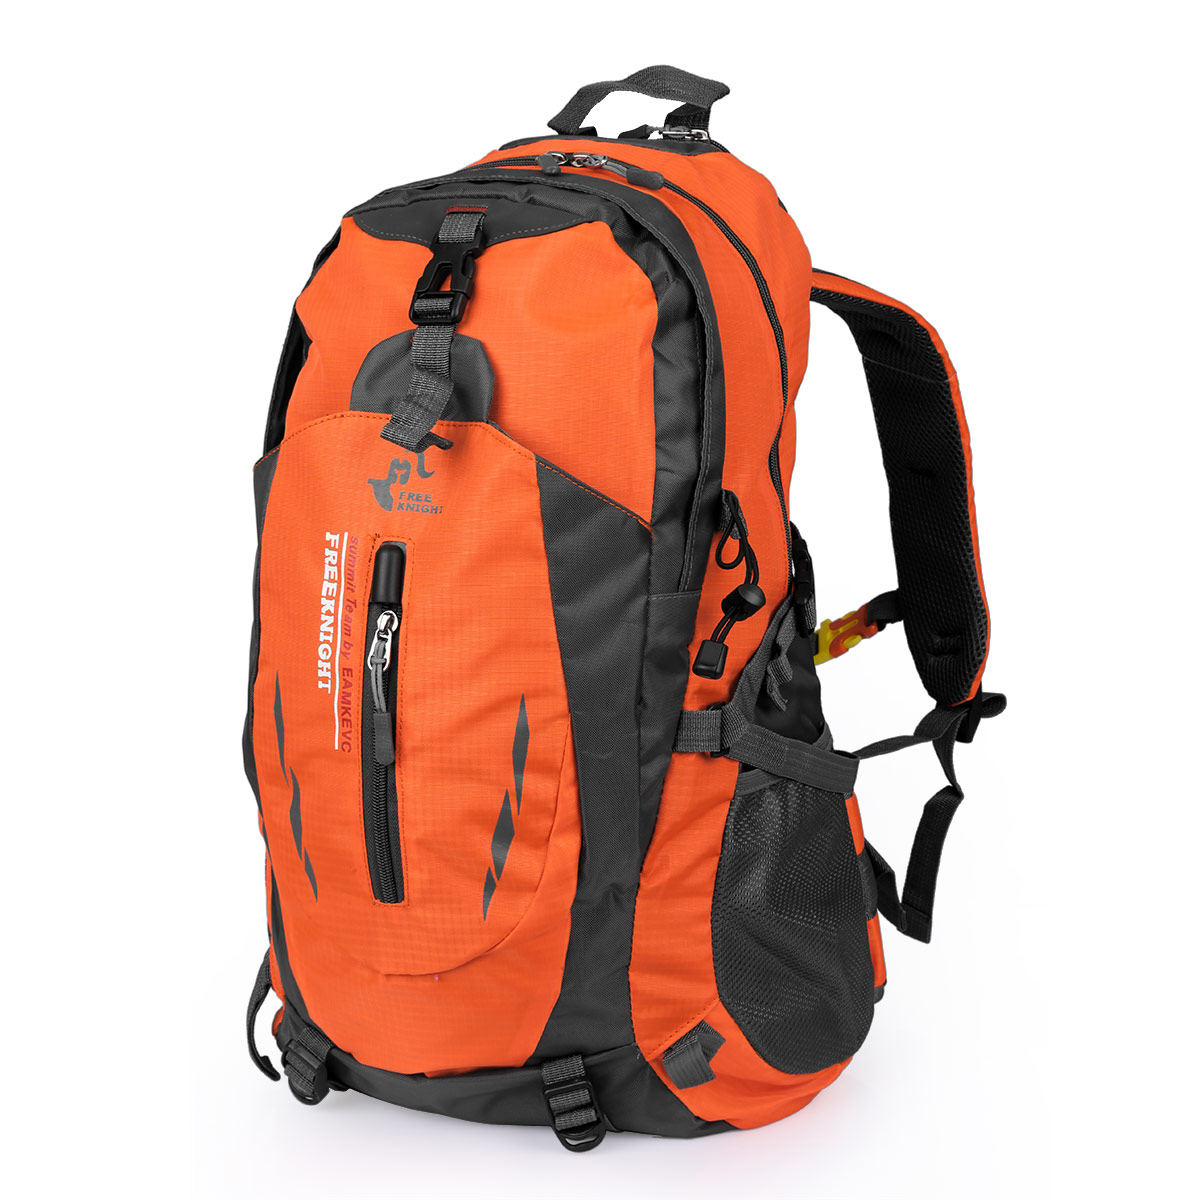 Outdoor Hiking Camping Water Resistant Nylon Travel Luggage Rucksack Backpack Bag